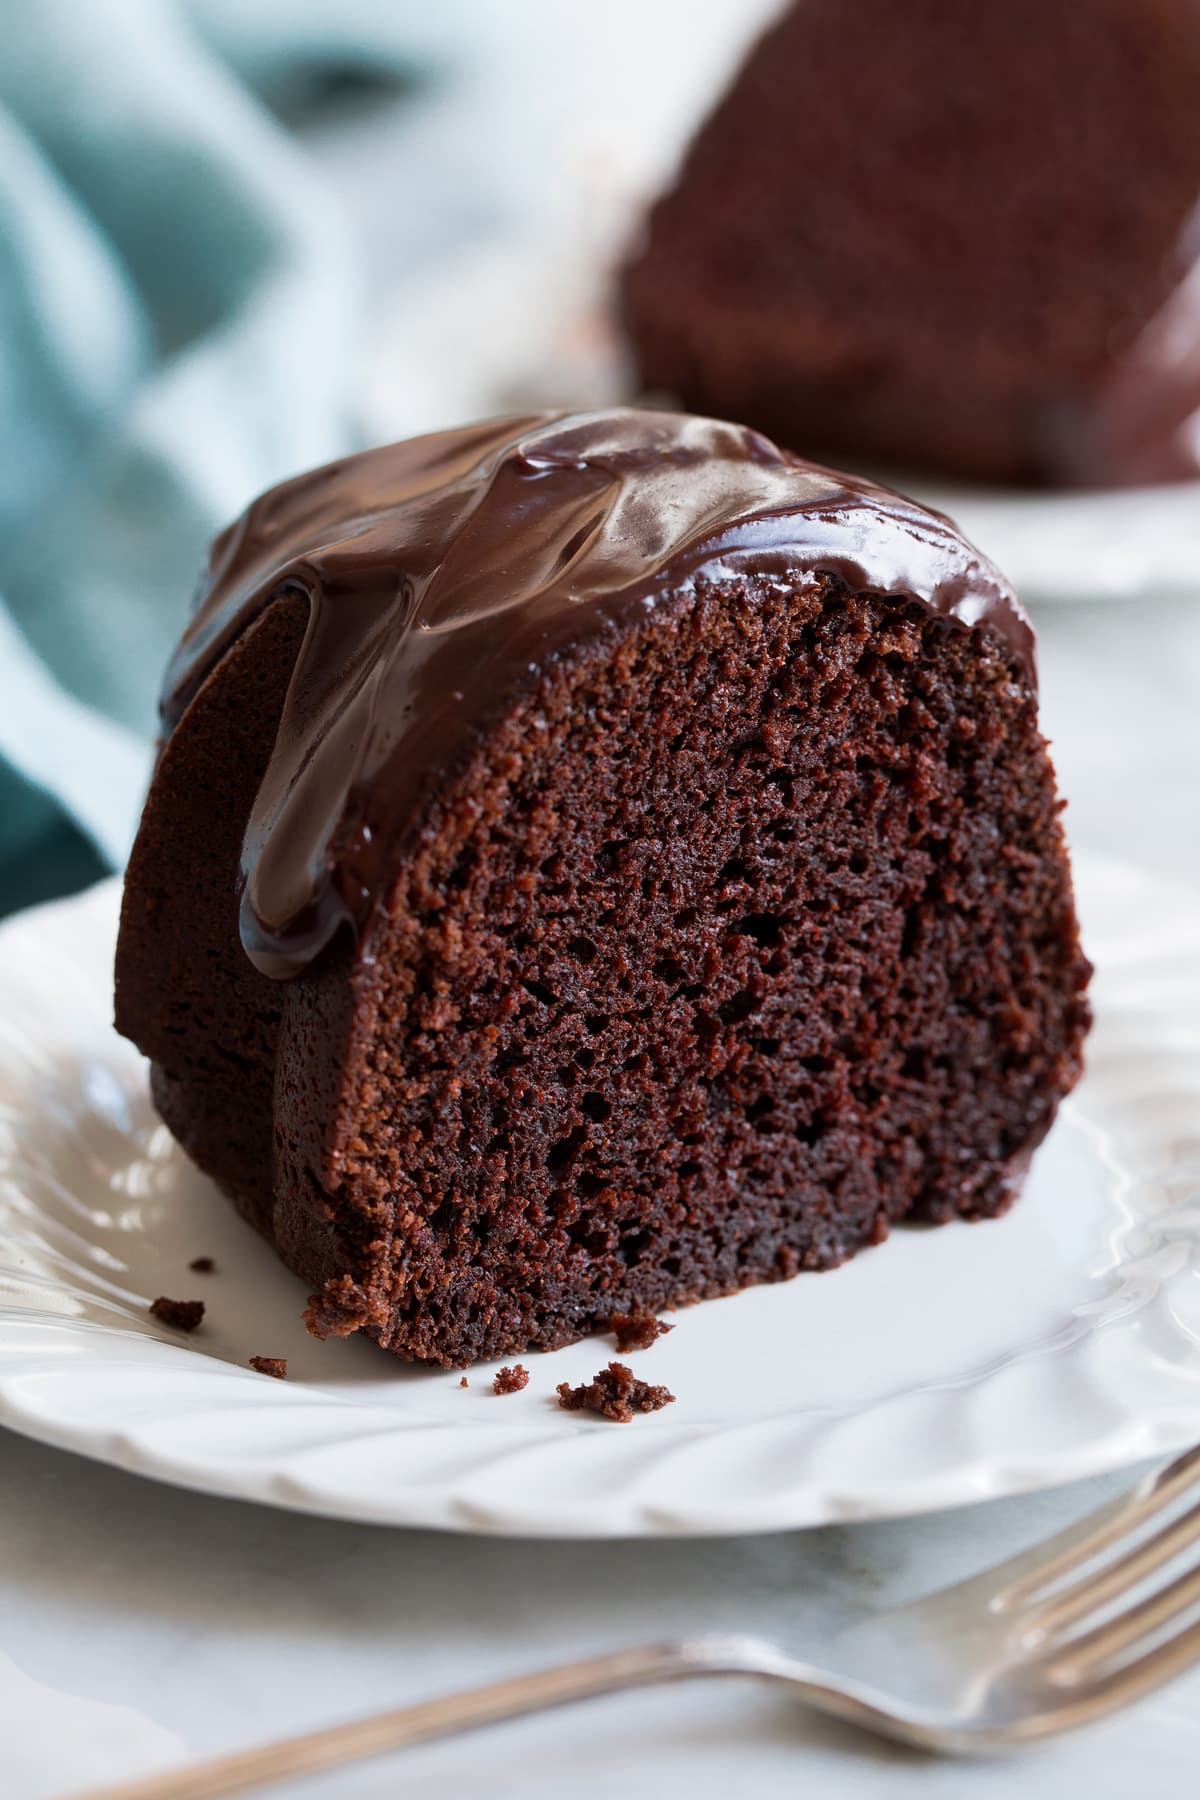 Slice of chocolate bundt cake covered with chocolate ganache.